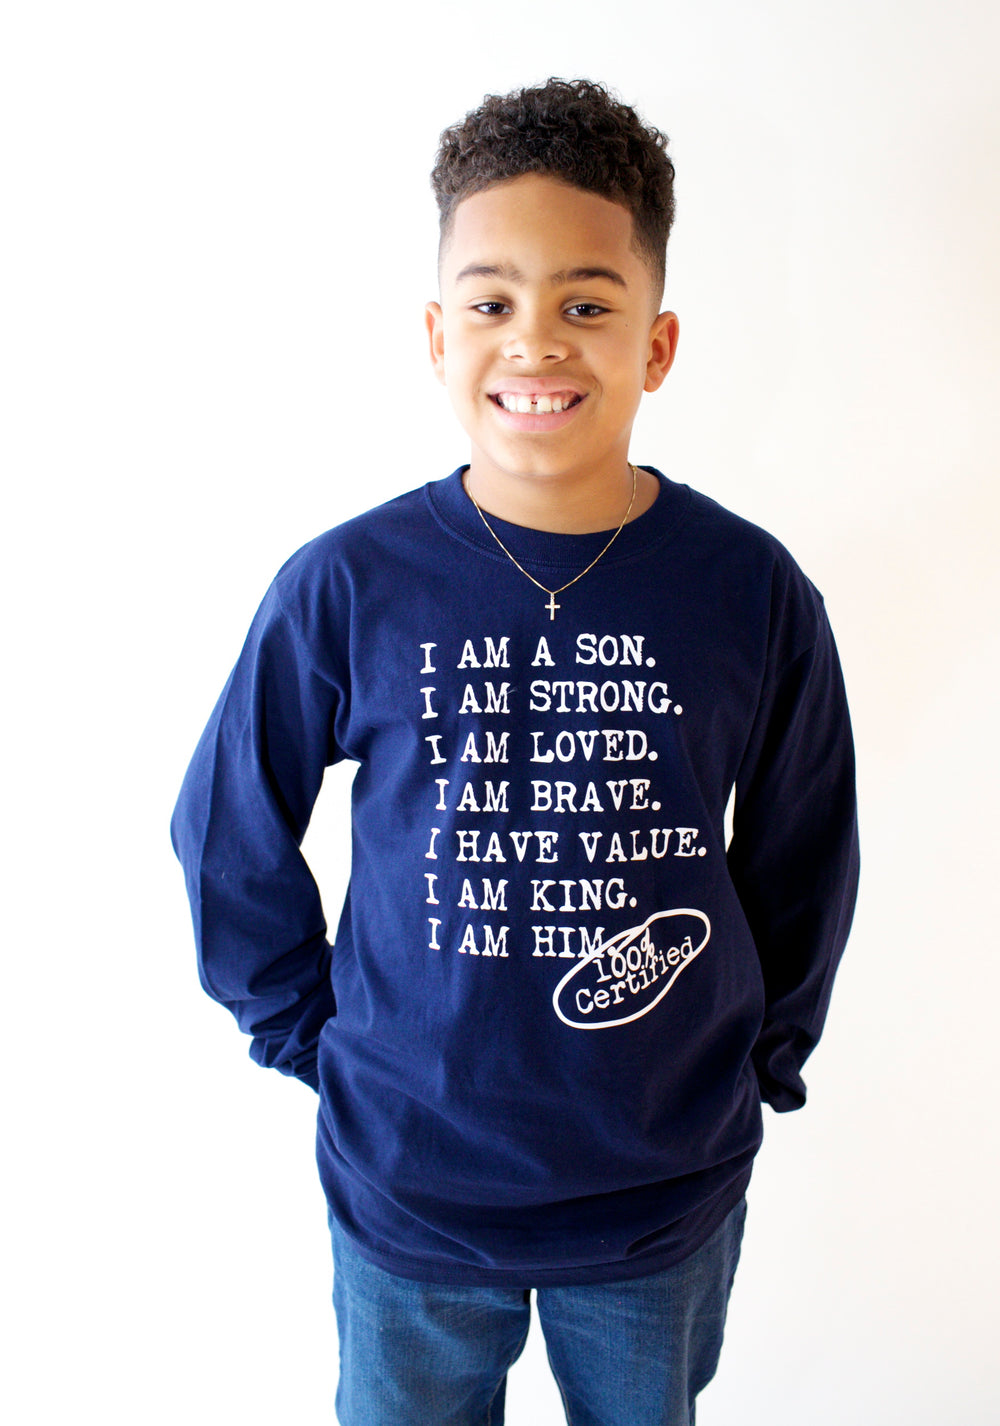 I AM A SON – Longsleeve Shirts for Boys